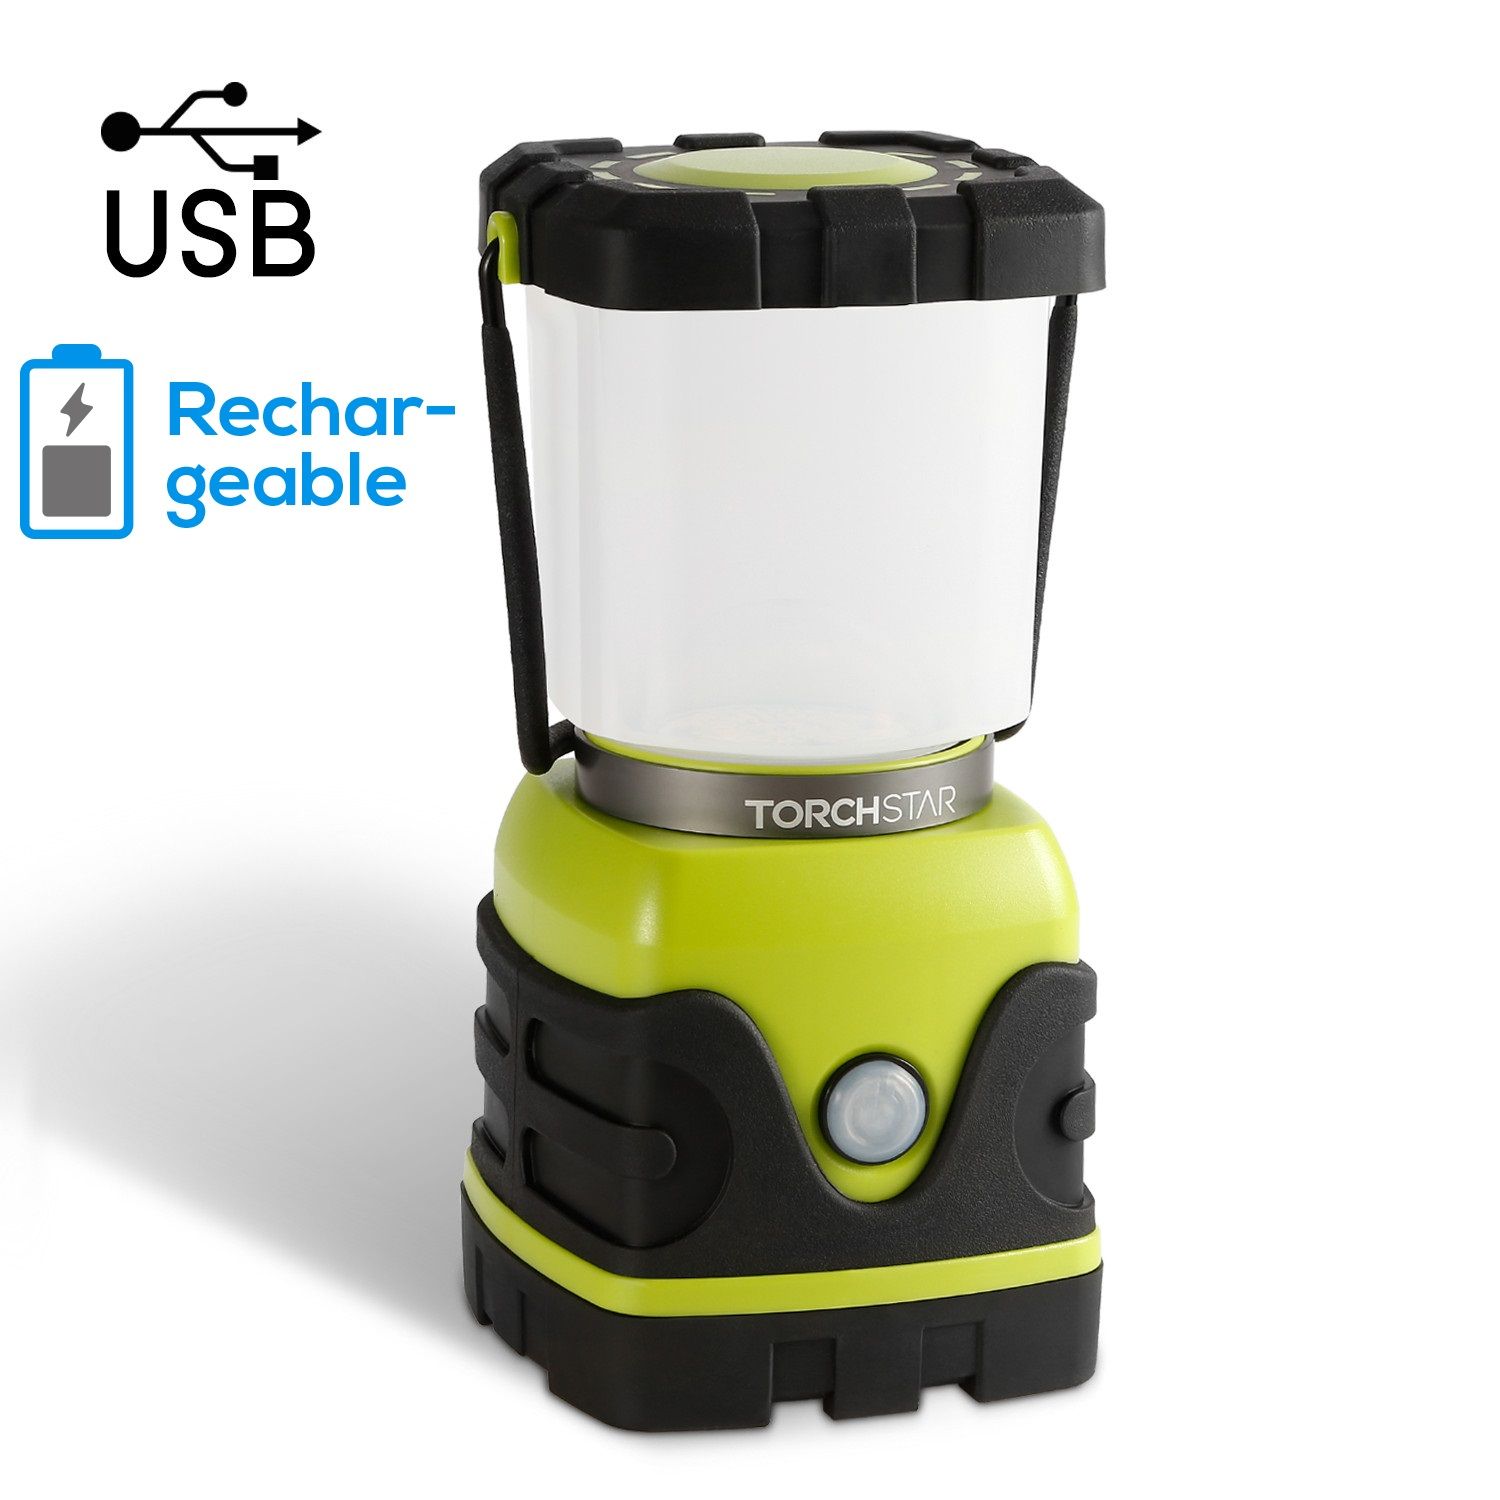 TORCHSTAR Portable LED Camping Lantern, 4-level Dimmable Emergency Light with 4400mAh Rechargeable Battery, Waterproof Hiking Fishing Outages Nightlight Survival Lamp, USB Port, Green